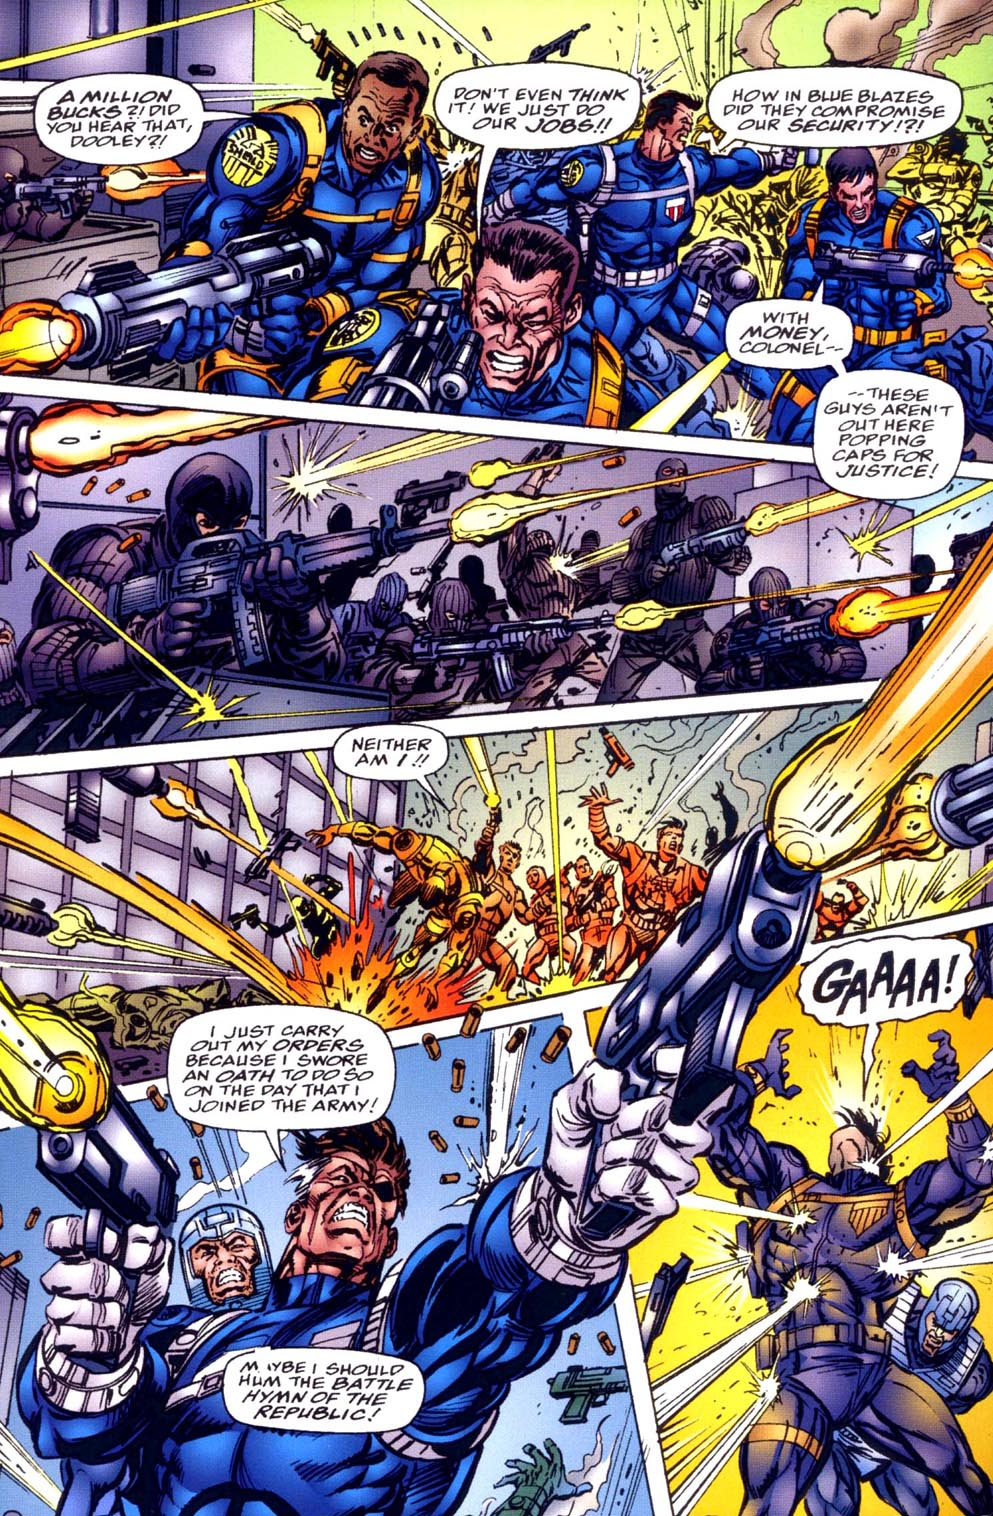 Read online Double Edge comic -  Issue # Issue Alpha - 4